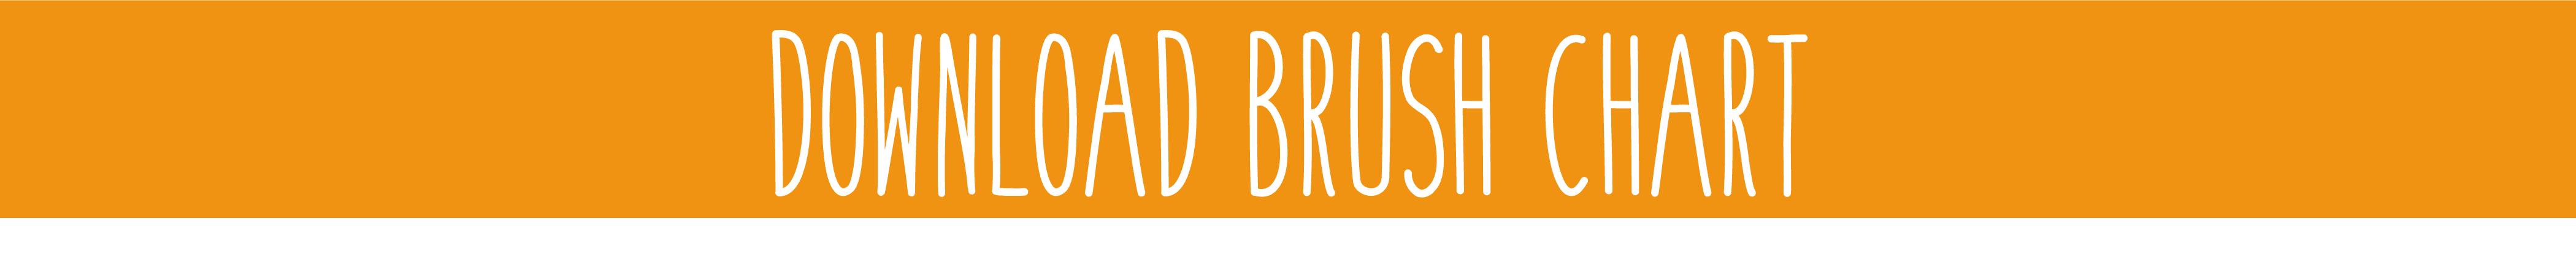 download brush chart button